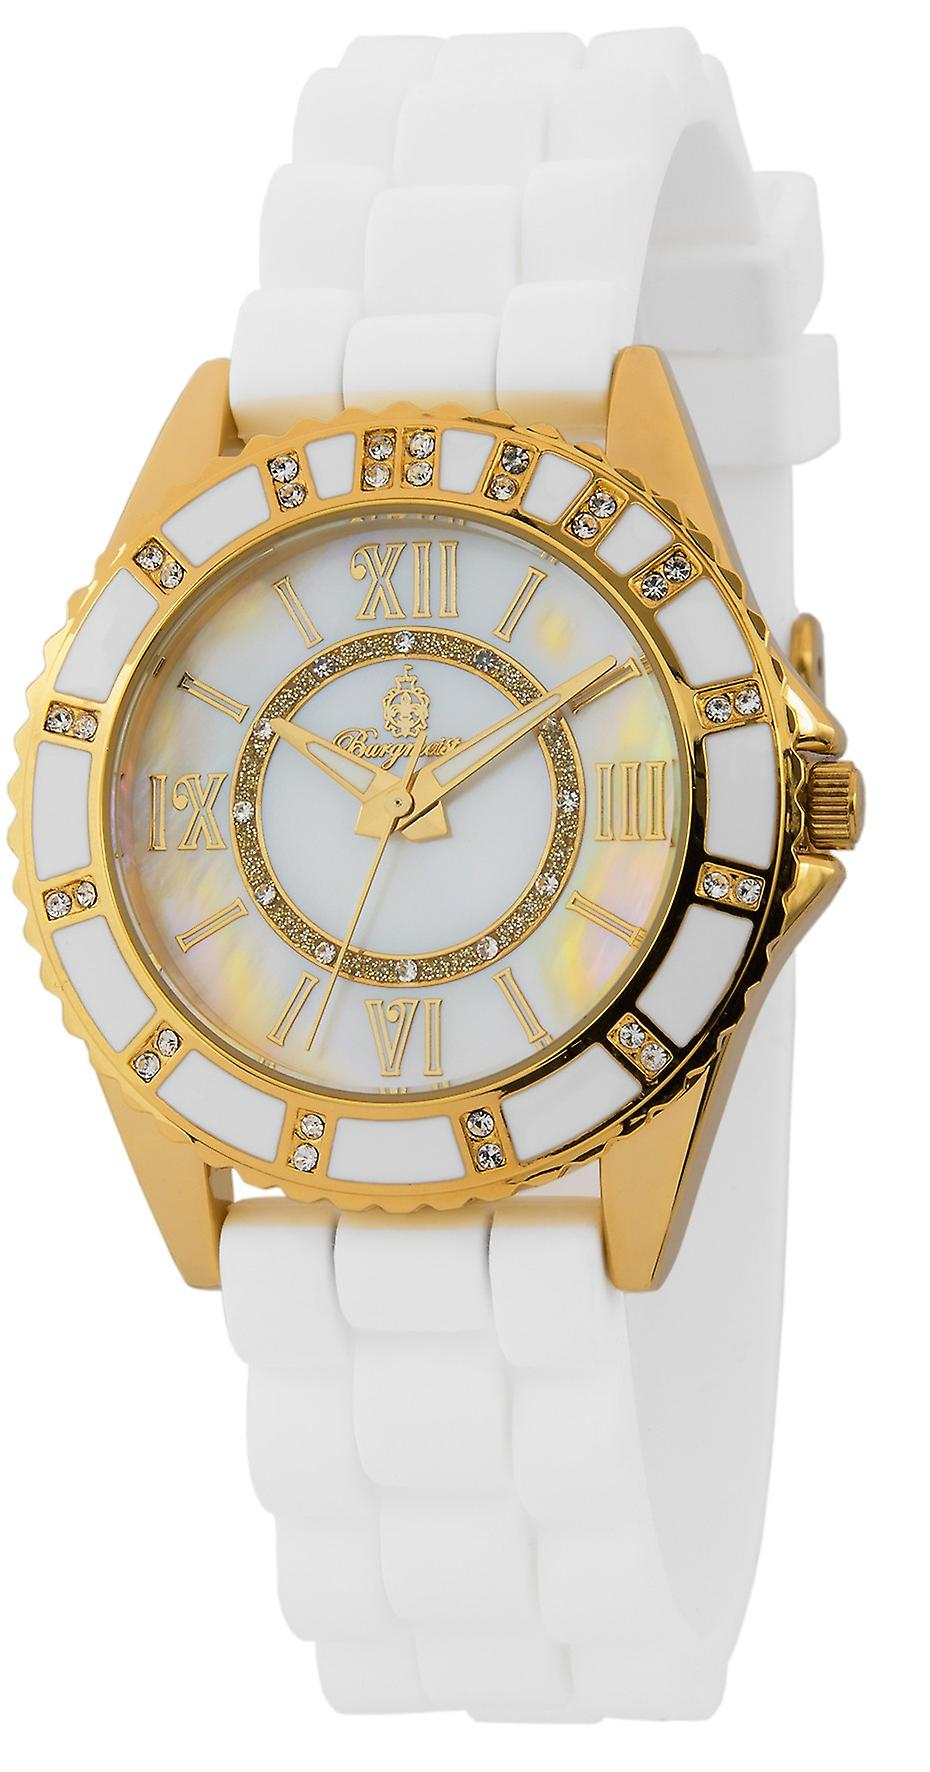 Burgmeister ladies quartz watch Malta, BM528-286